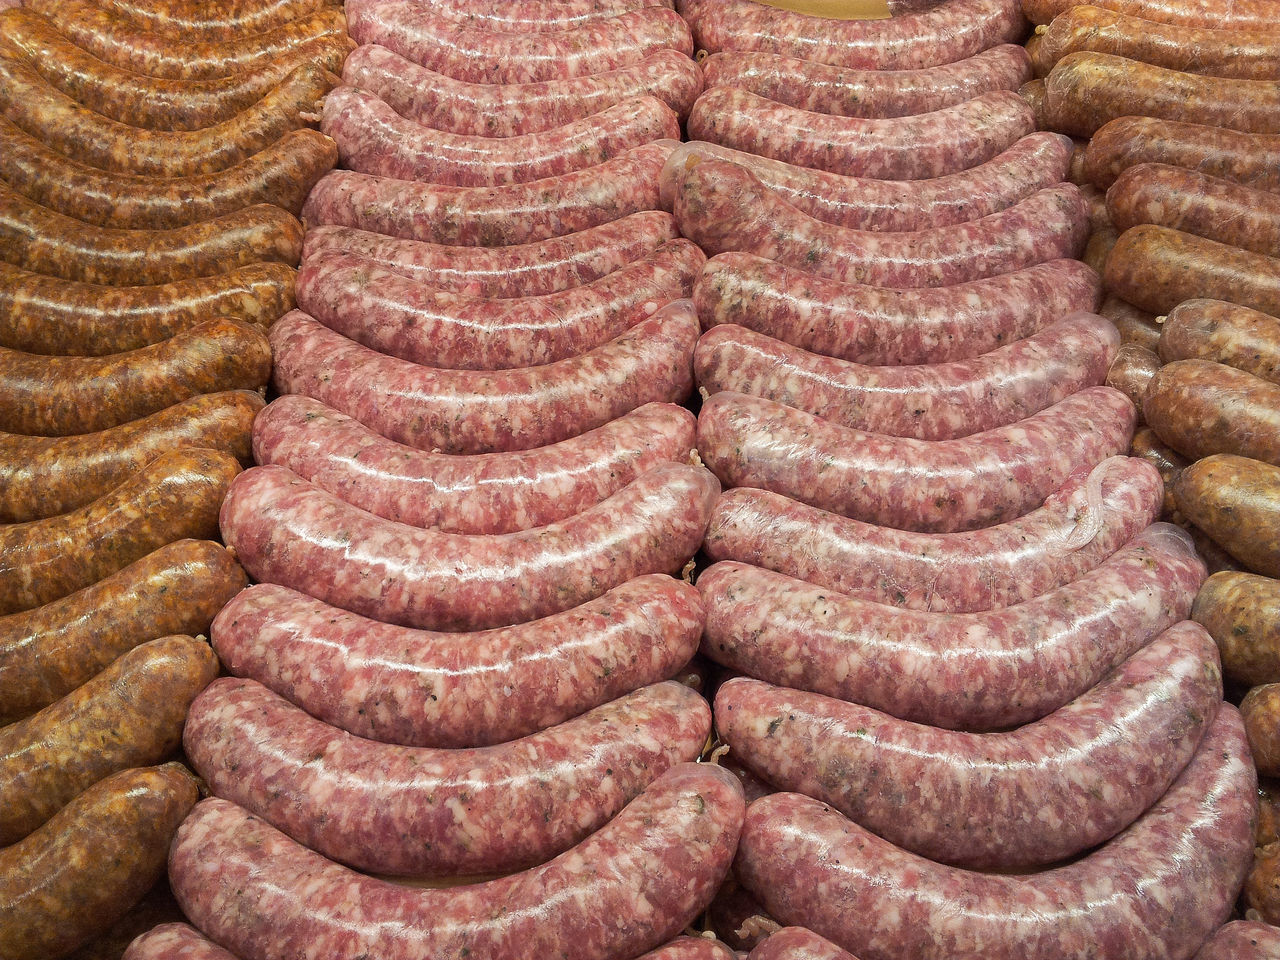 Fresh bratwursts Abundance Arrangement Backgrounds BBQ Beef Brats Bratwurst Butcher Circle Close-up Cooking Culture Design Detail Food Food Photography Foodphotography Full Frame Geometry Grilling Meat! Meat! Meat! Metal No People Order Pattern Pork Repetition Spiral Yum Yummy